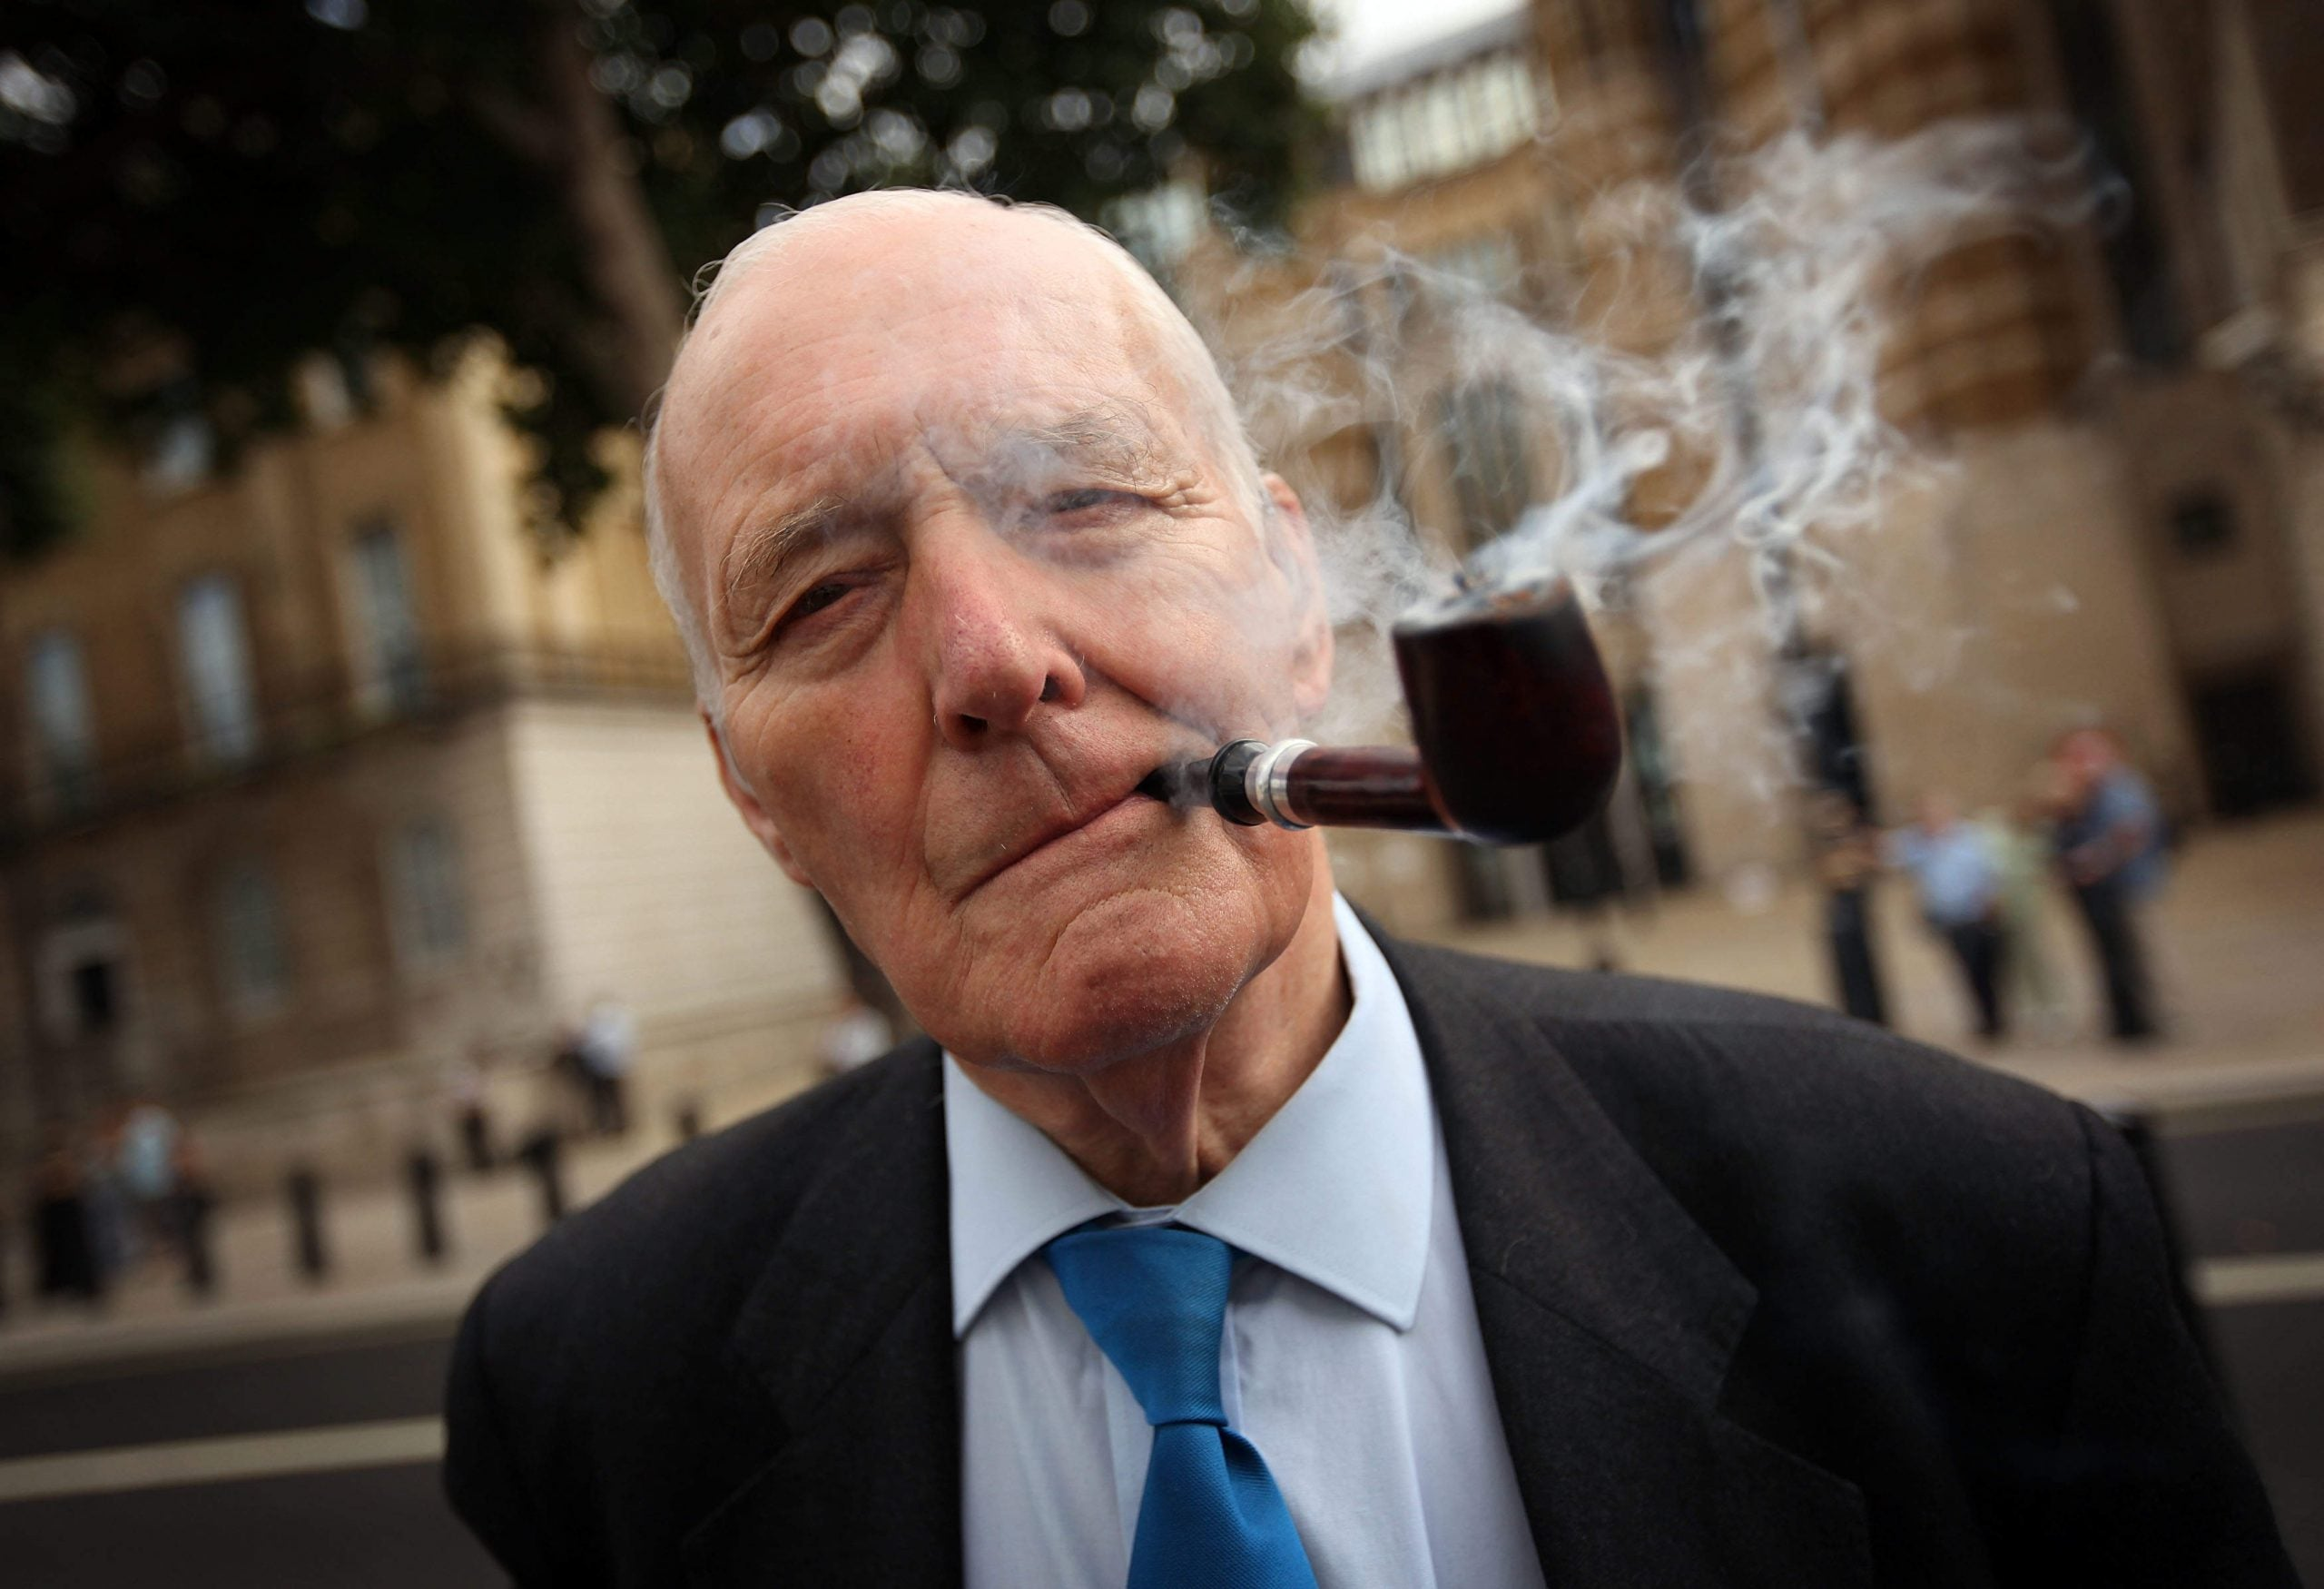 My mother elbowed Tony Benn out of the way to get to her Vietnamese comrades